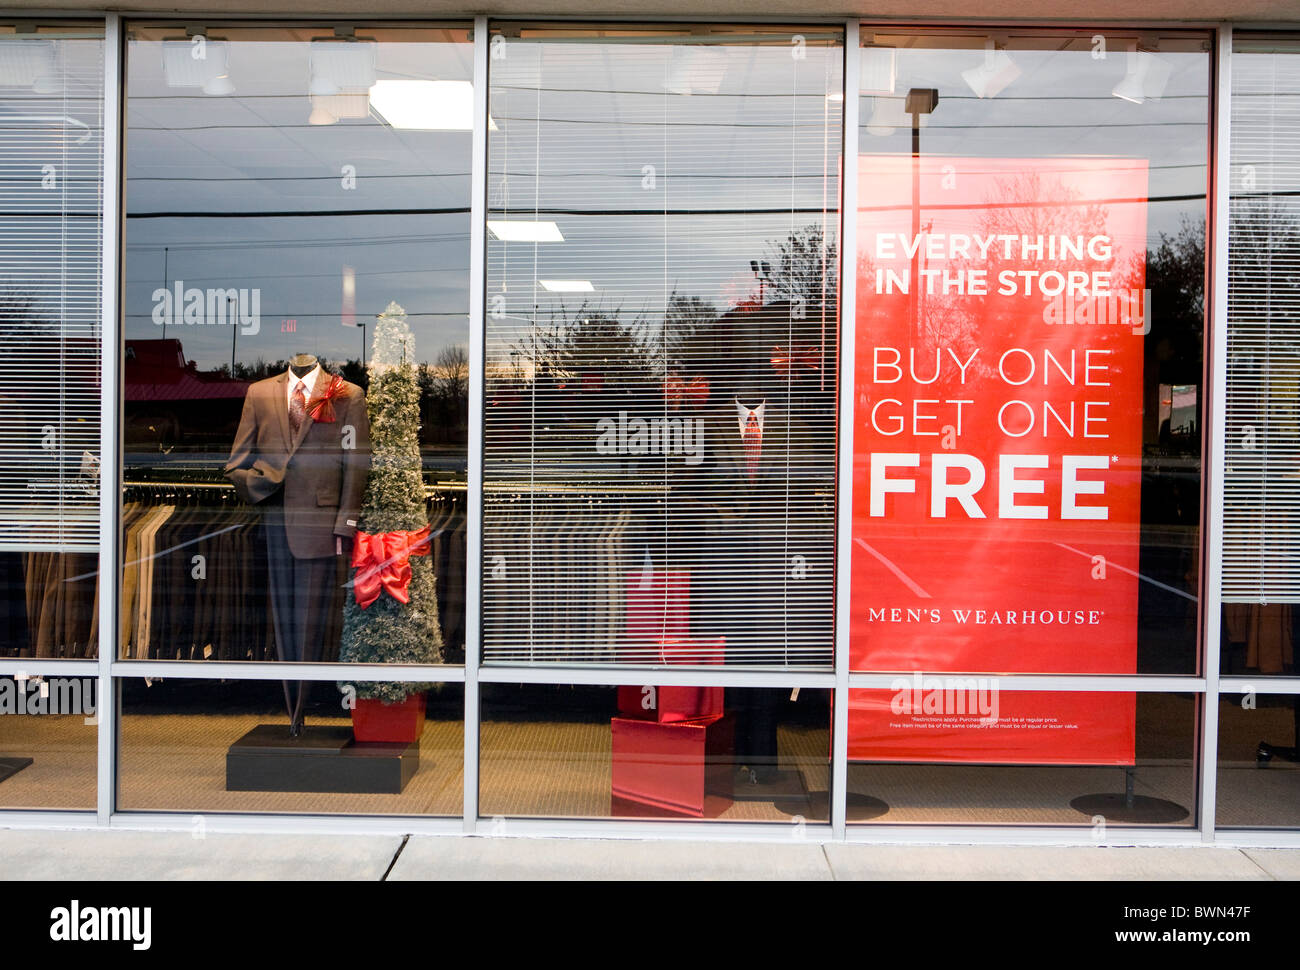 A Men's Wearhouse clothing retail store.  - Stock Image